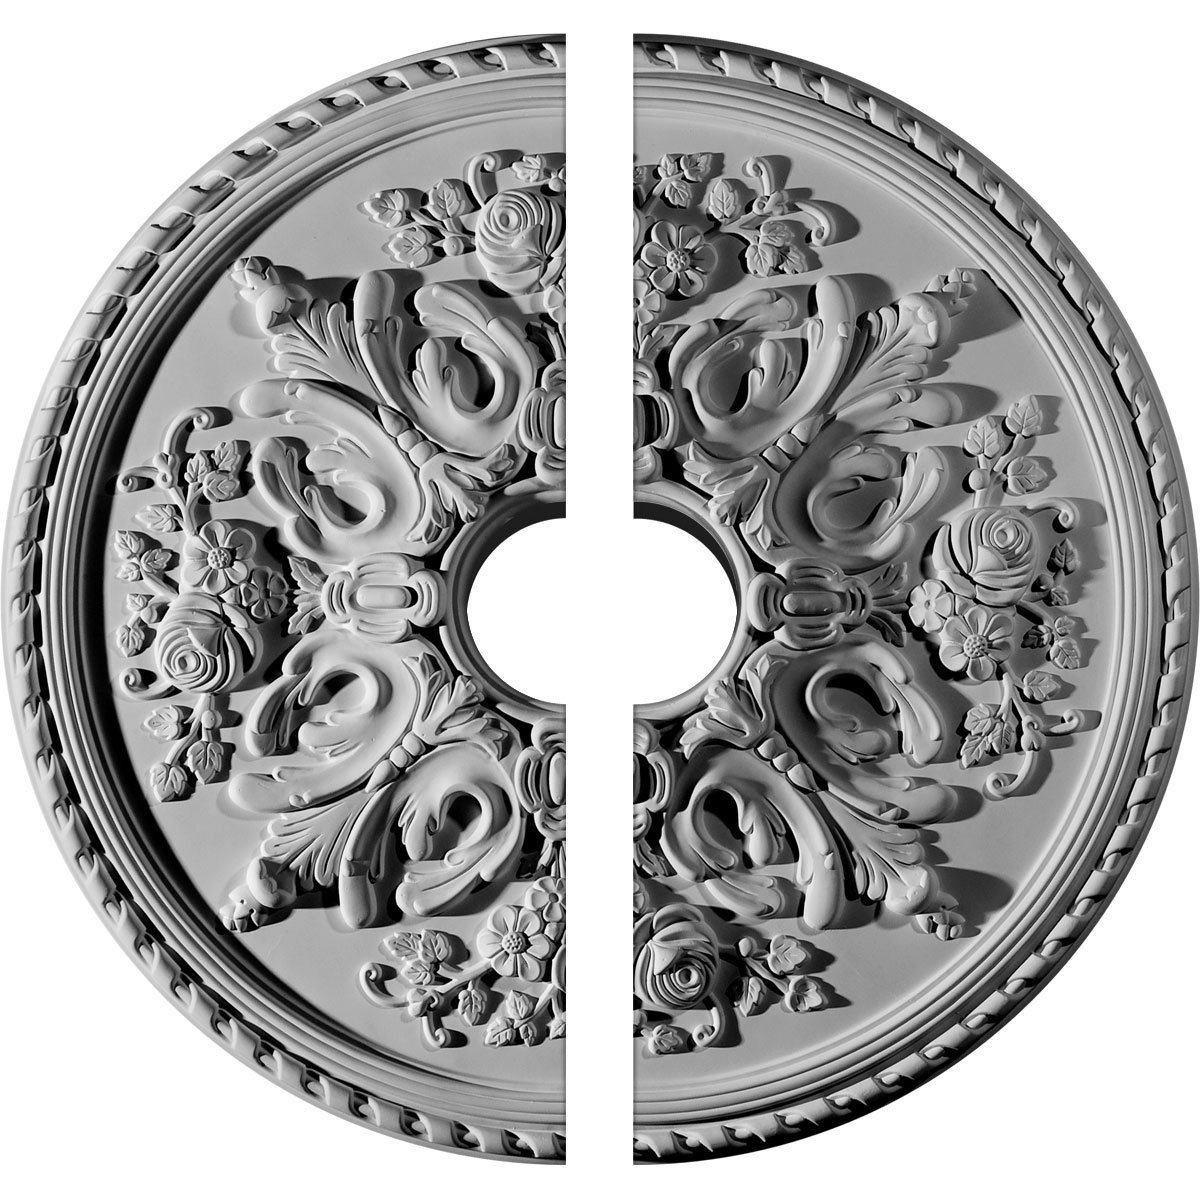 Ekena Millwork CM32BR2-06000 32 OD ID x 2'' P Bradford Ceiling Medallion, Two Piece (Fits Canopies up to 6 5/8''), Factory Primed White